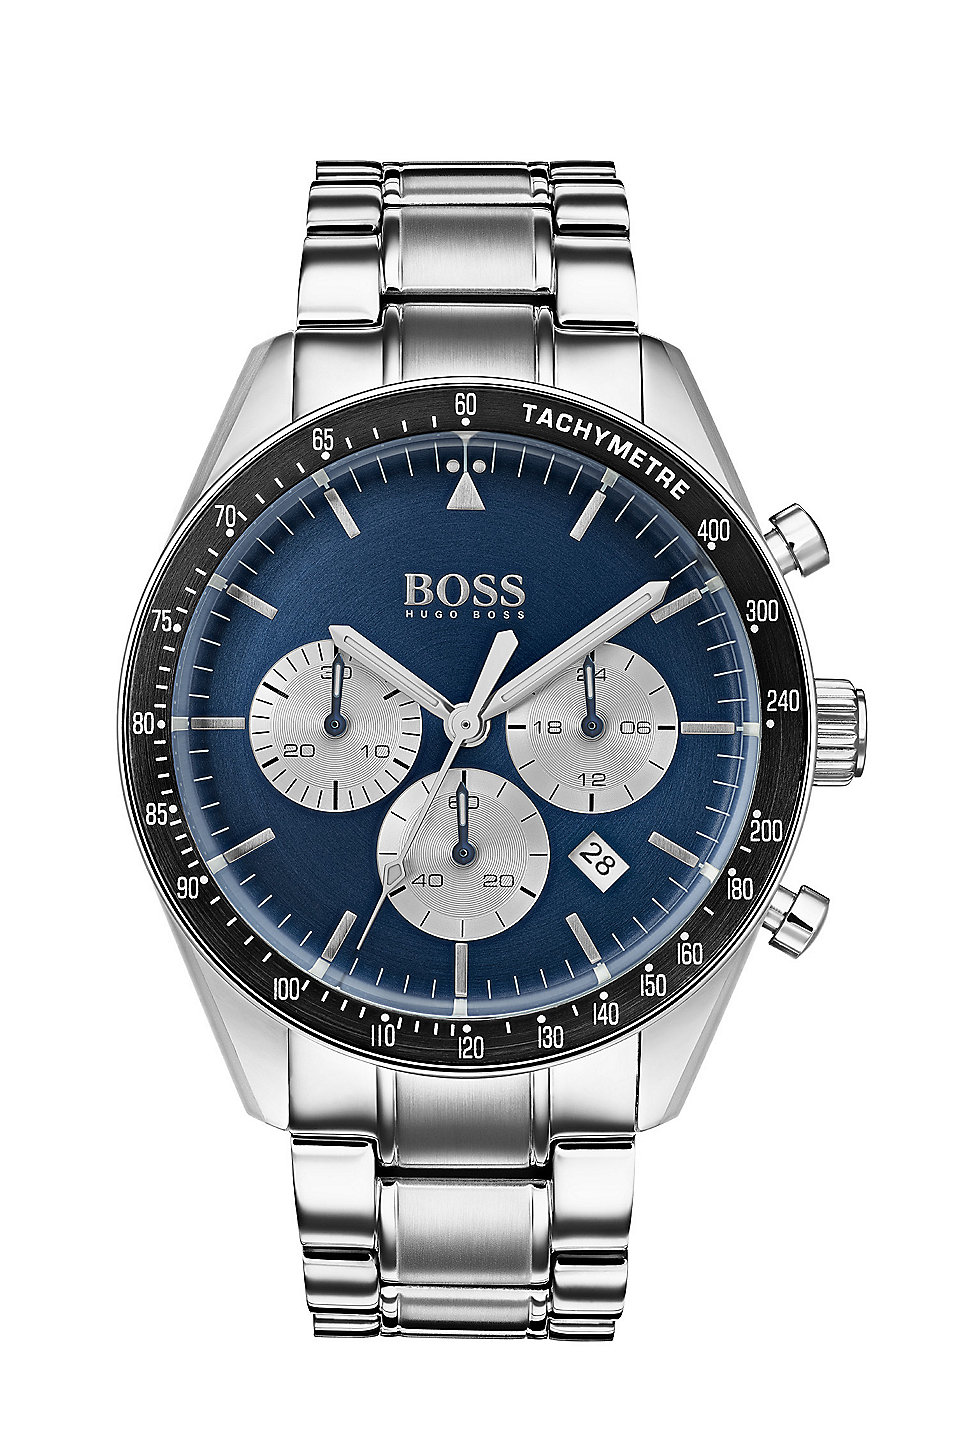 Boss Blue Dial Chronograph Watch With Stainless Steel